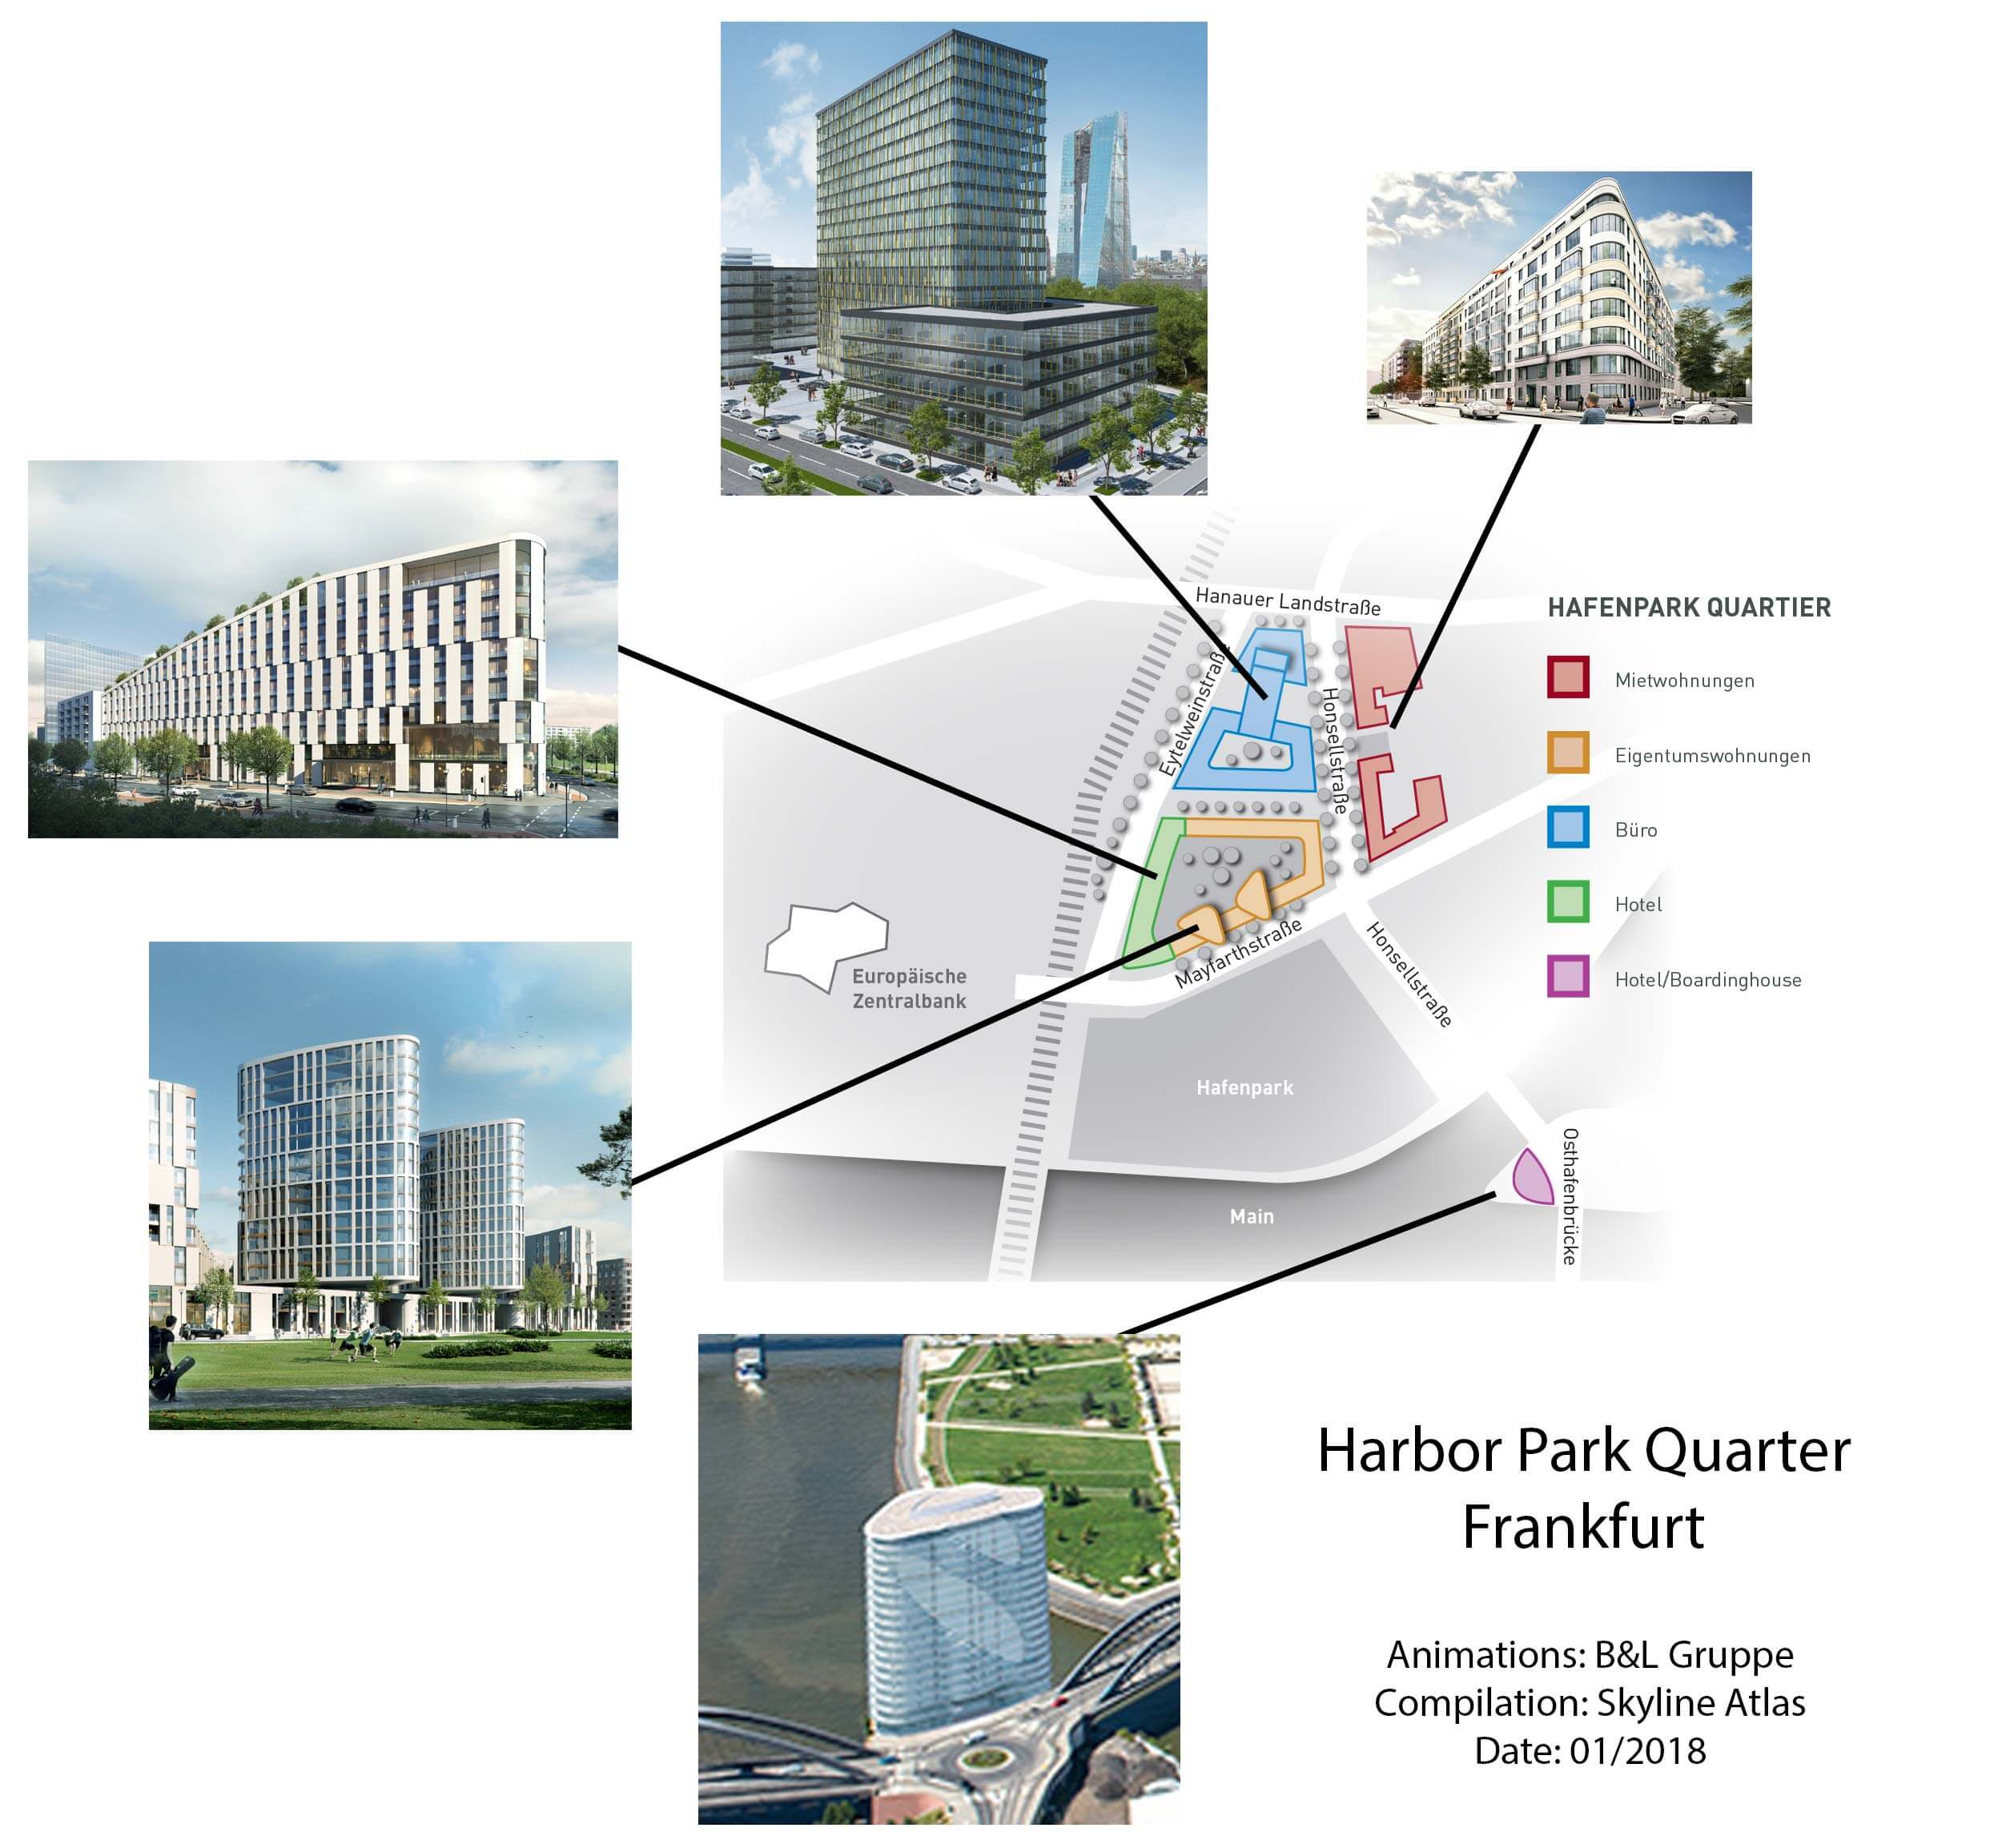 Hafenpark-Quartier in Frankfurt Germany - Harbor Park Quarter